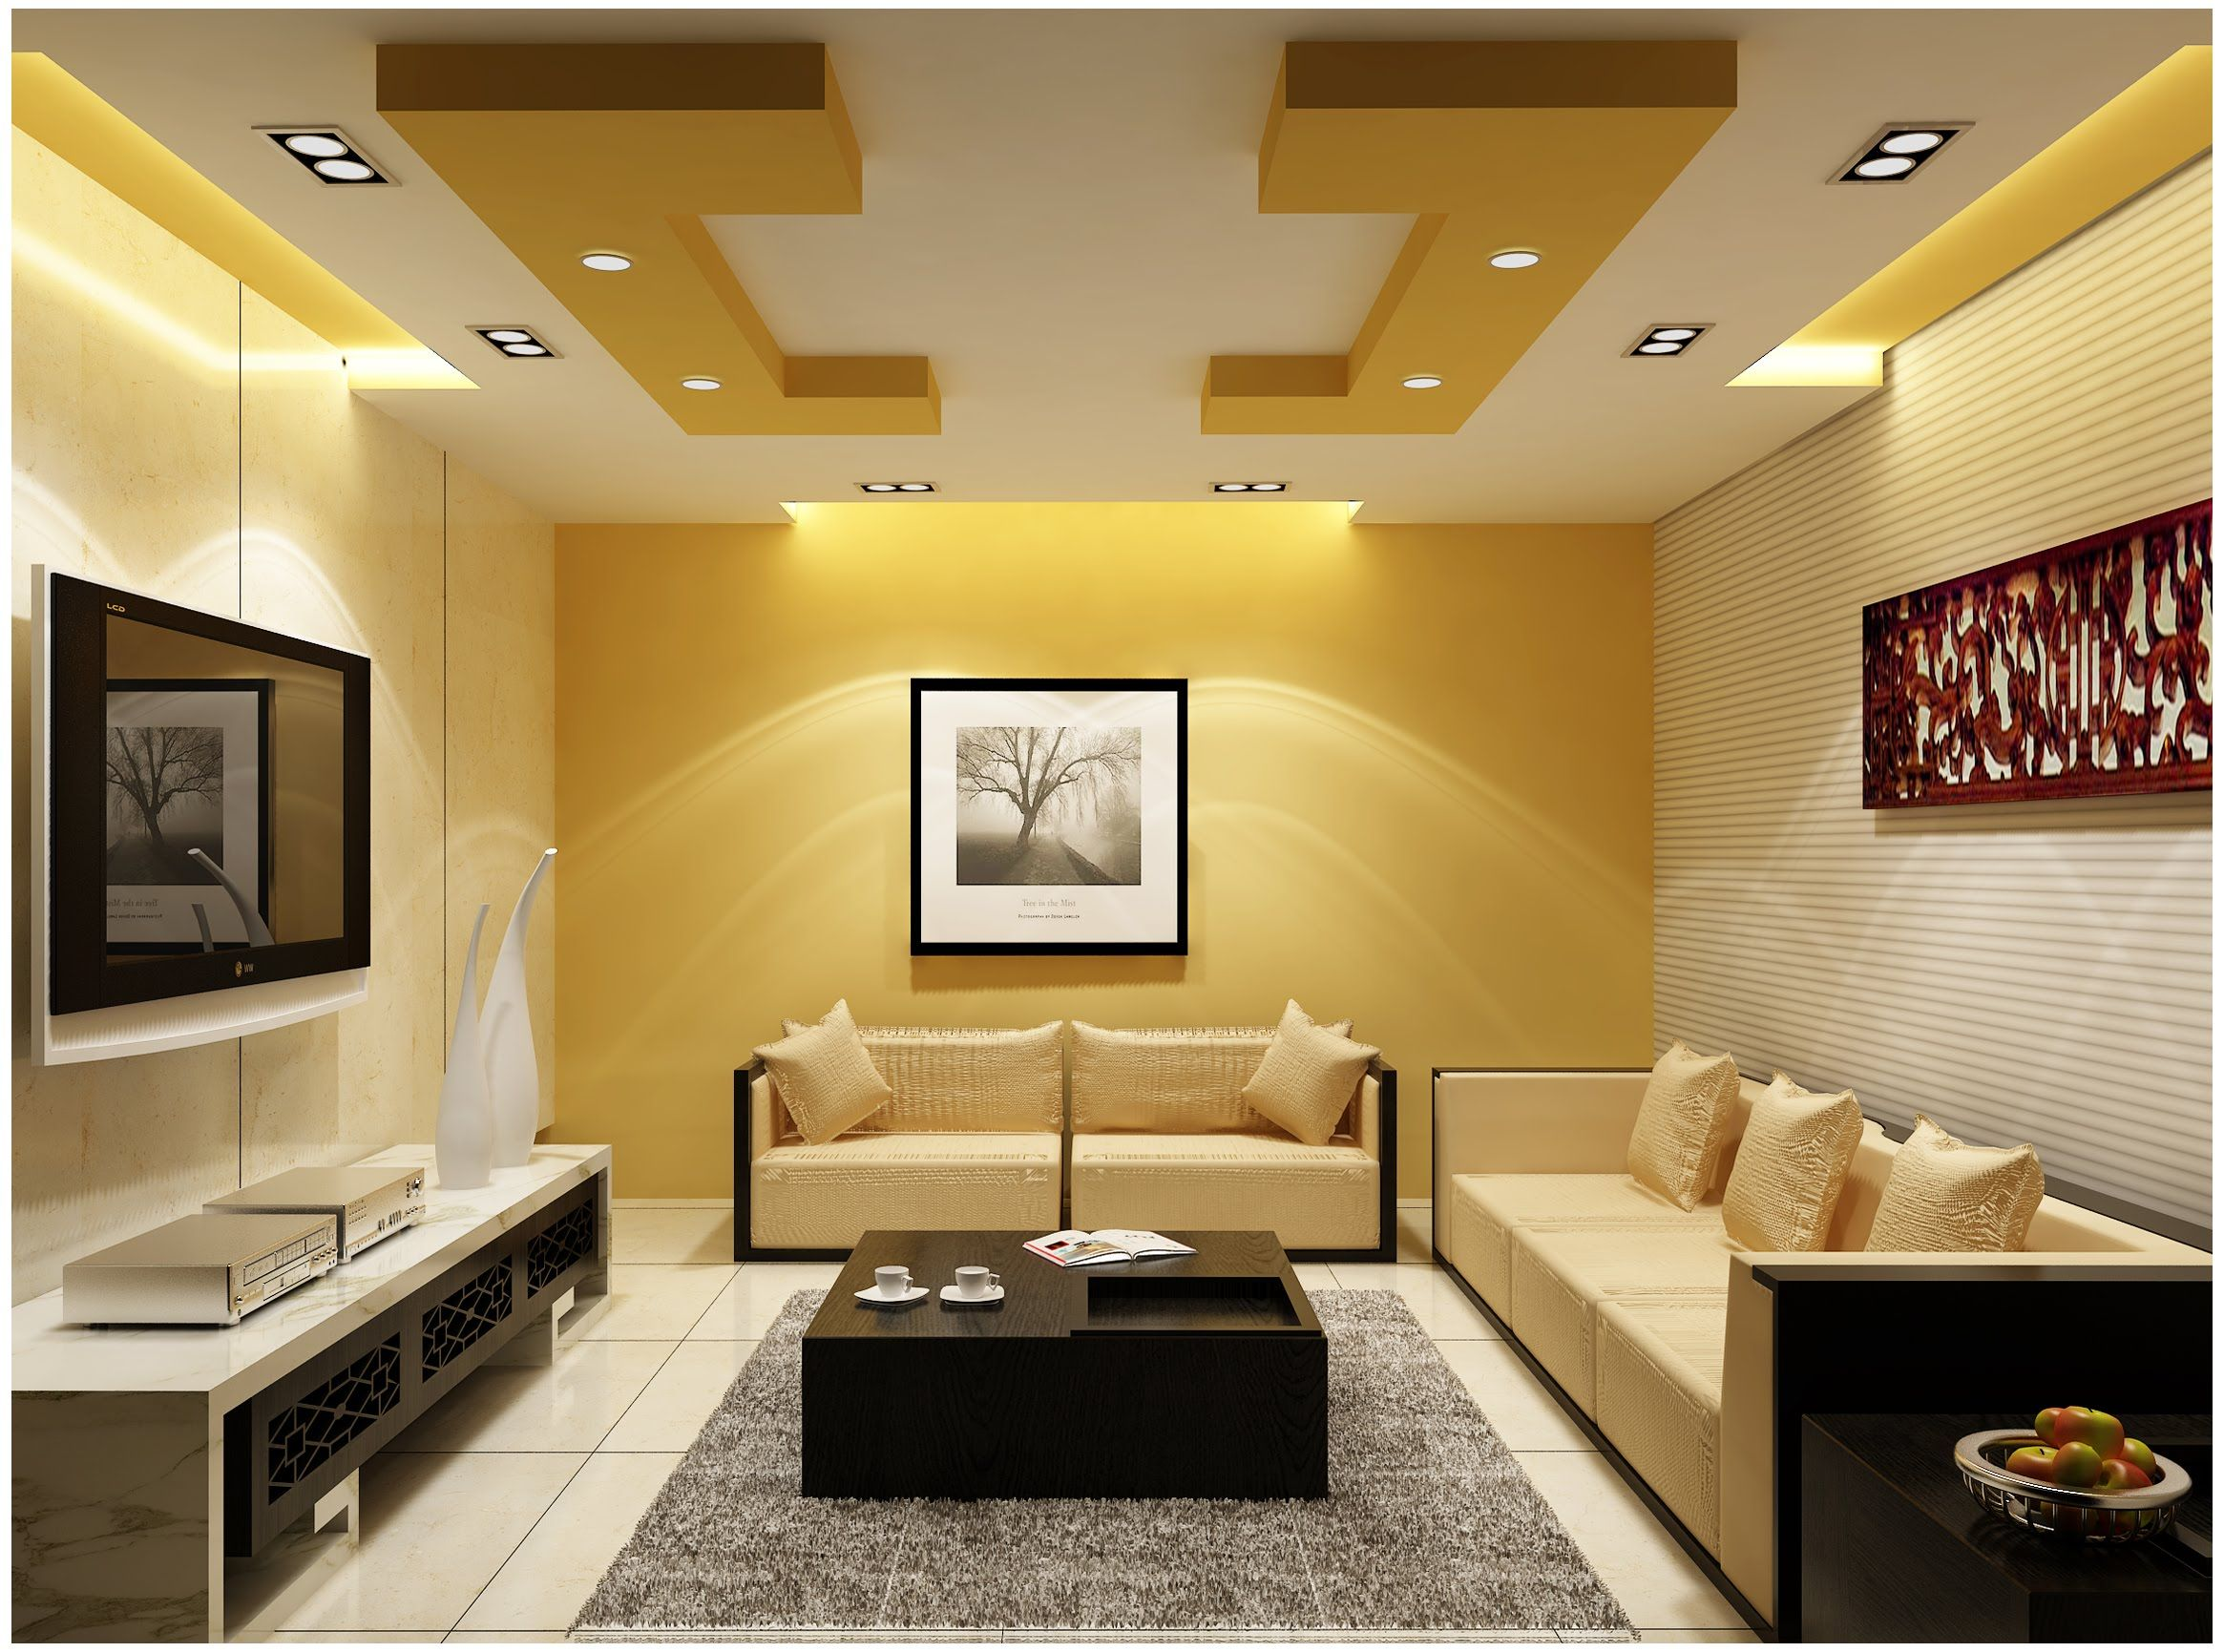 False ceiling design Designs for living room